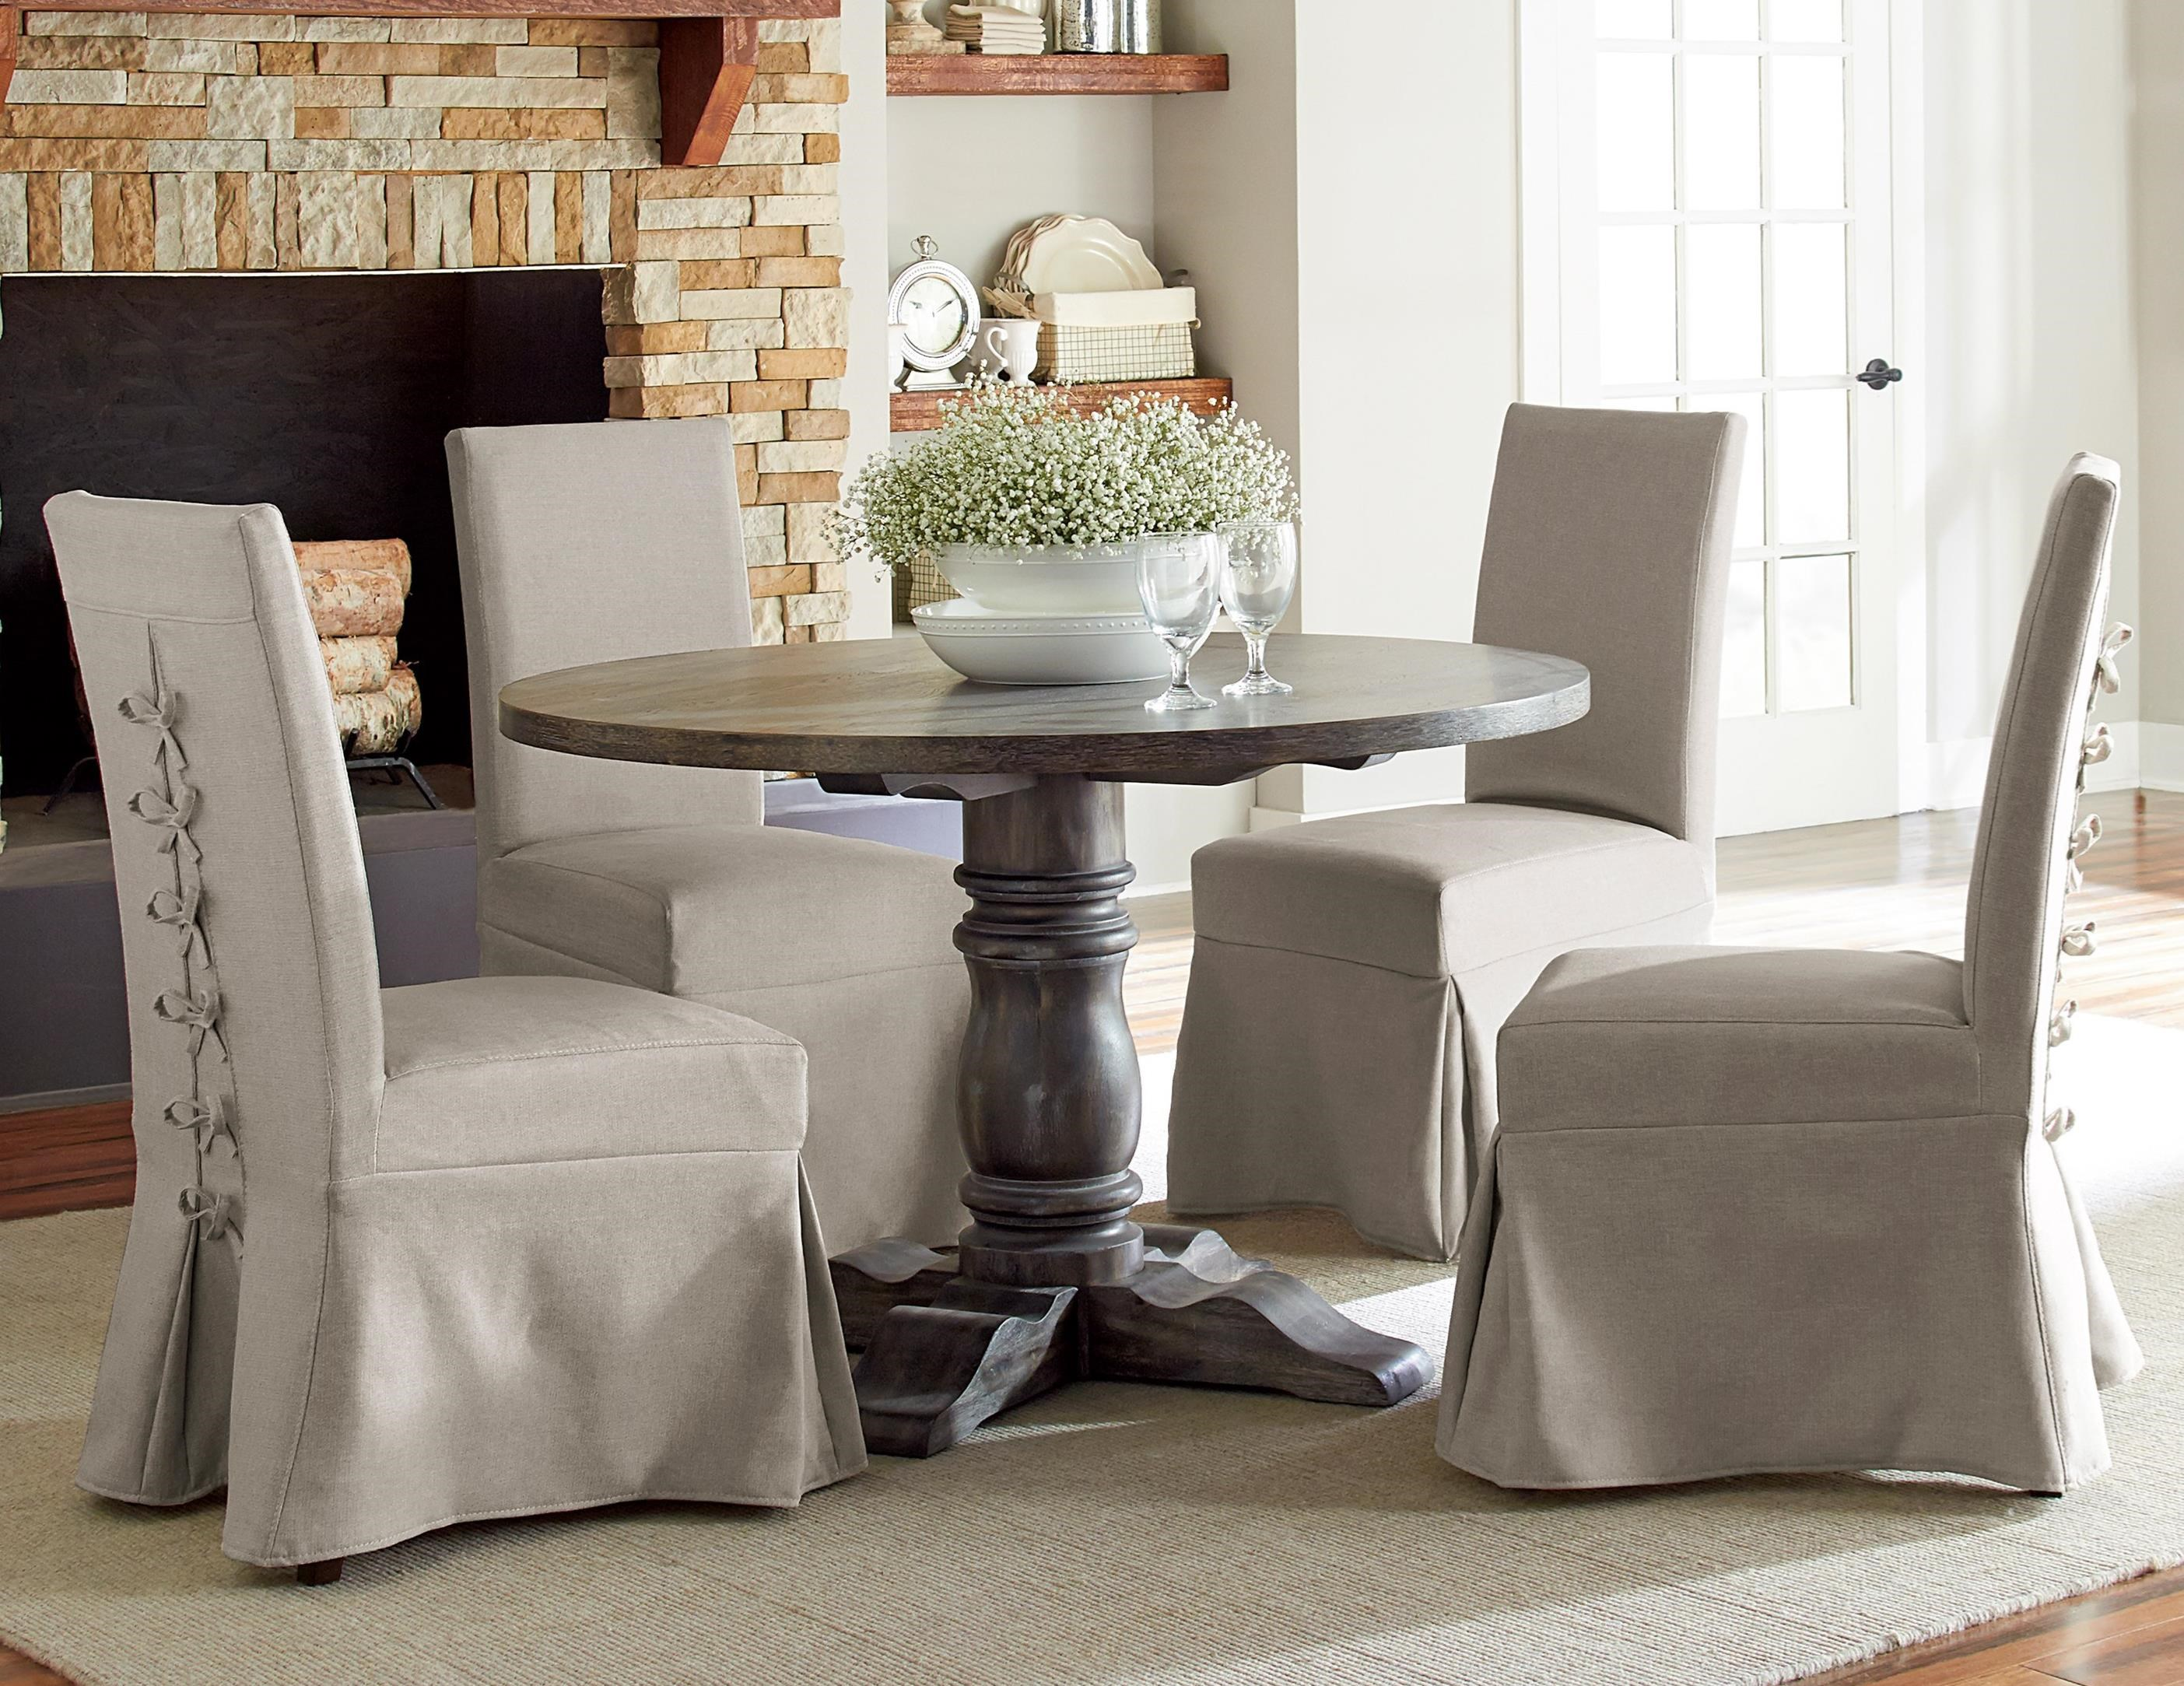 Progressive furniture muses 5 piece round dining table set item number p836